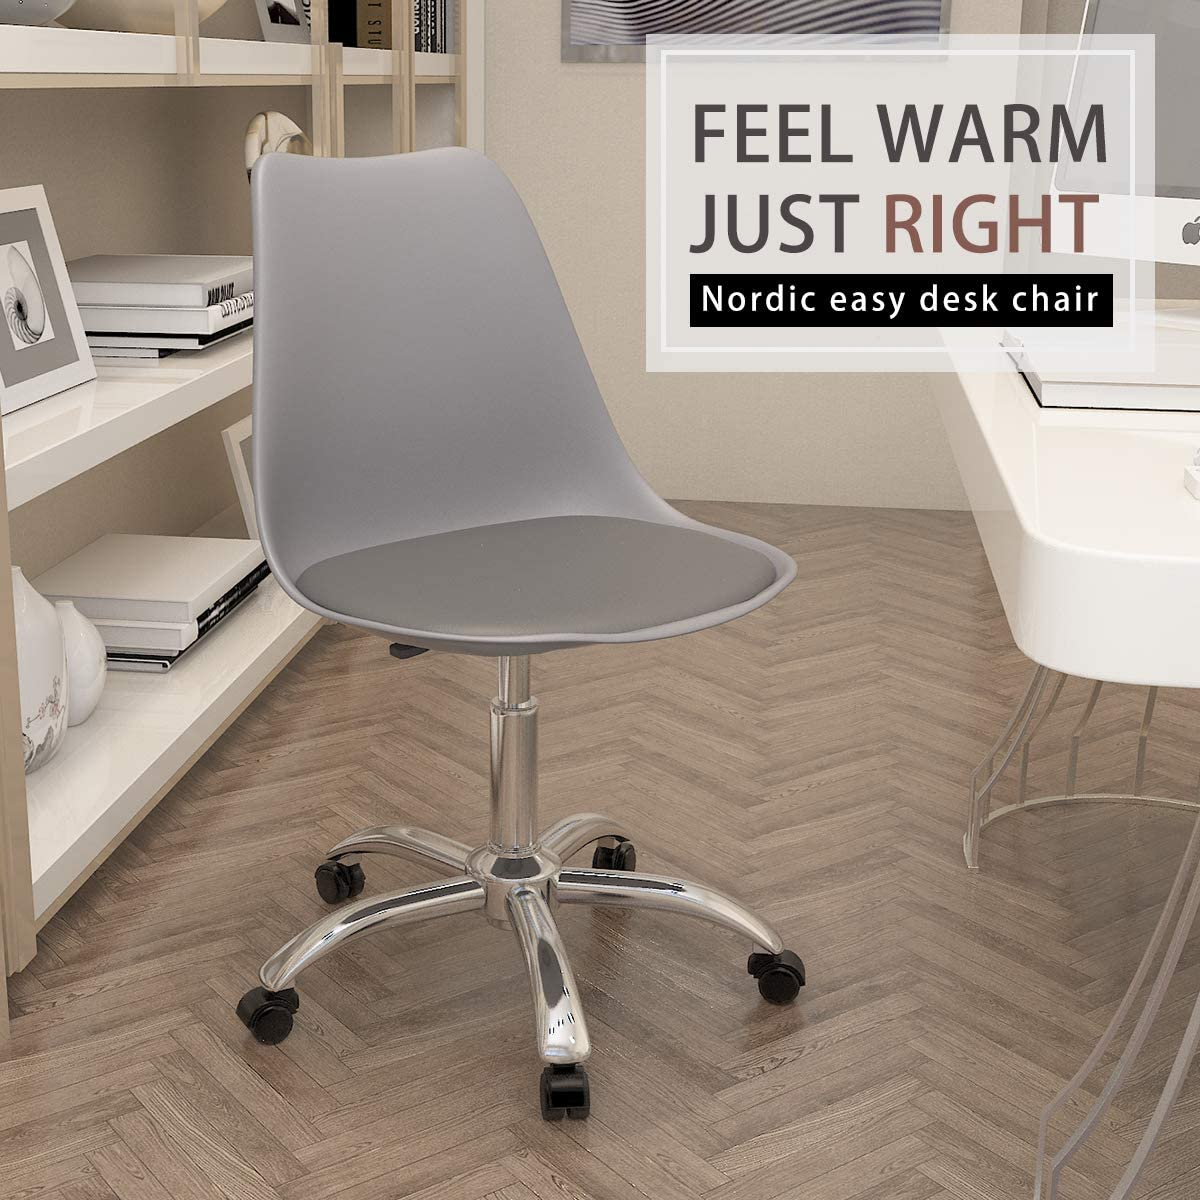 Desk Chairs Home Kitchen Euco Desk Chair For Home Grey Office Chair Comfy Padded Leather Computer Chair Adjustable Height Swivel Chair With Chrome Base Home Office Furniture